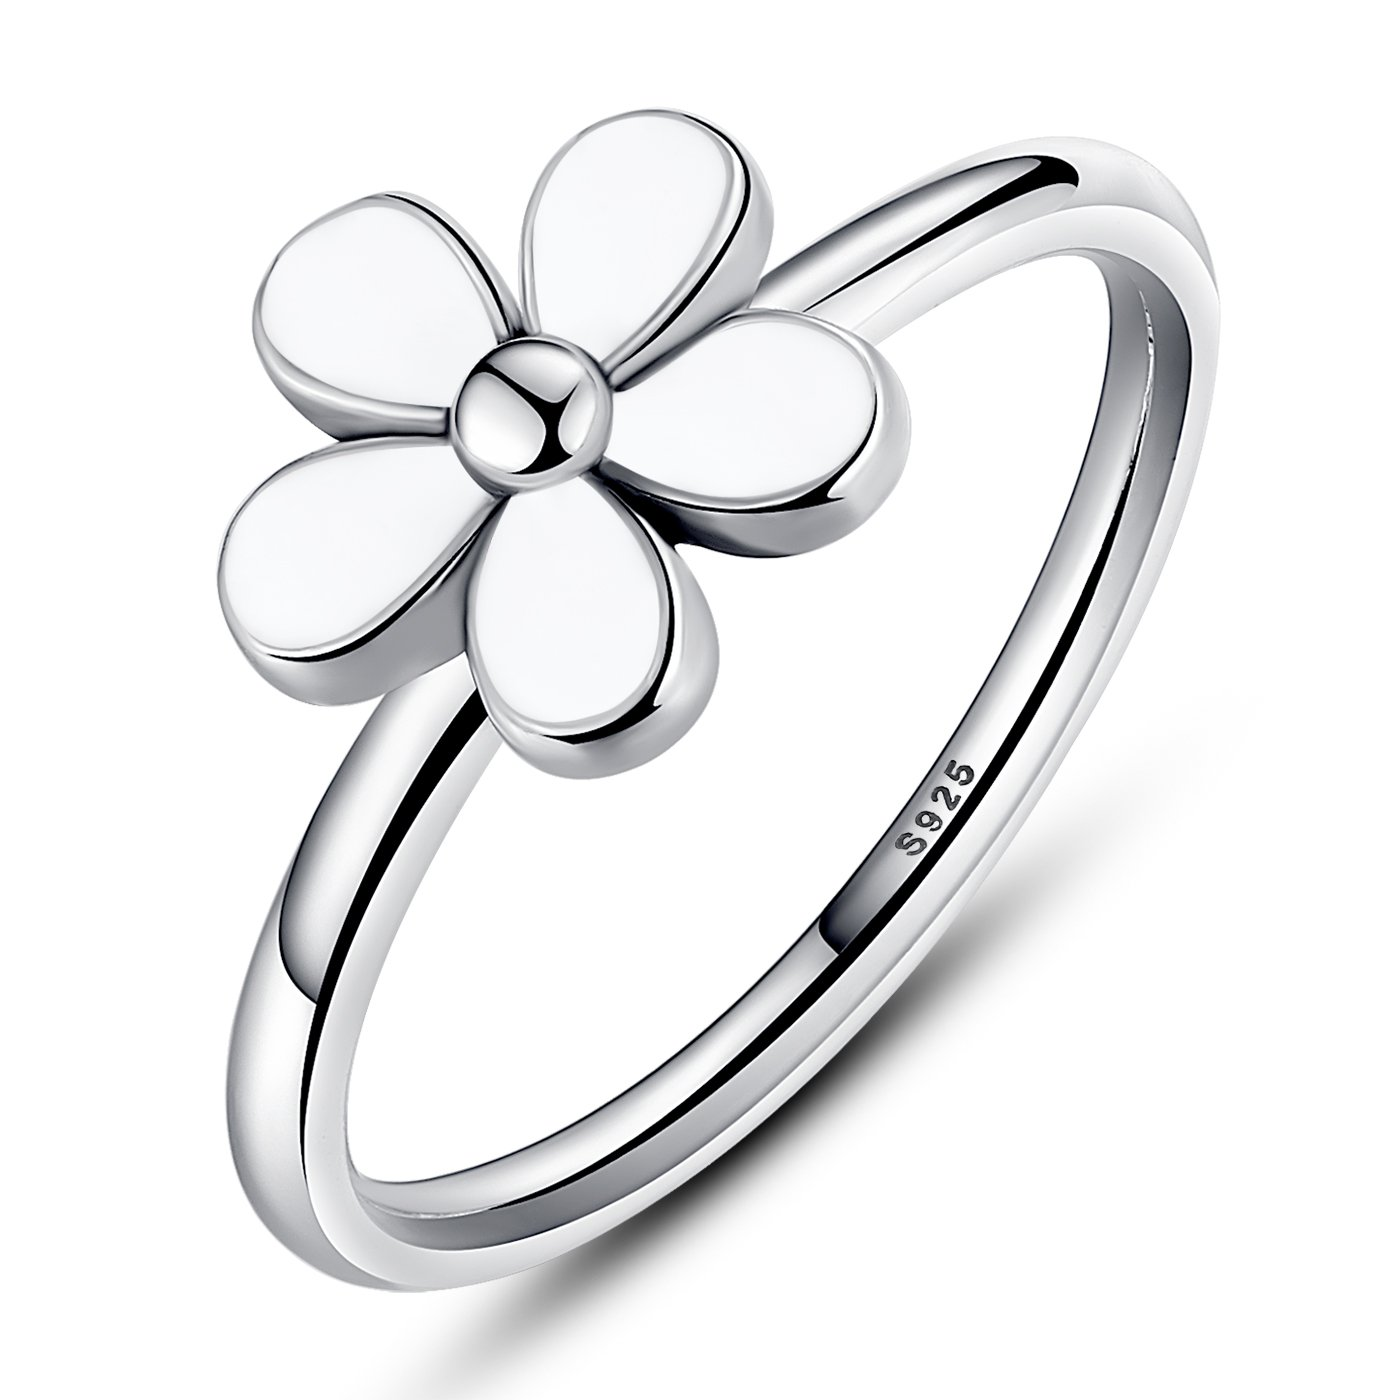 BAMOER 925 Sterling Silver Vintage Flower Stackable wedding Rings White Enamel For Women Size 6-9 (7)